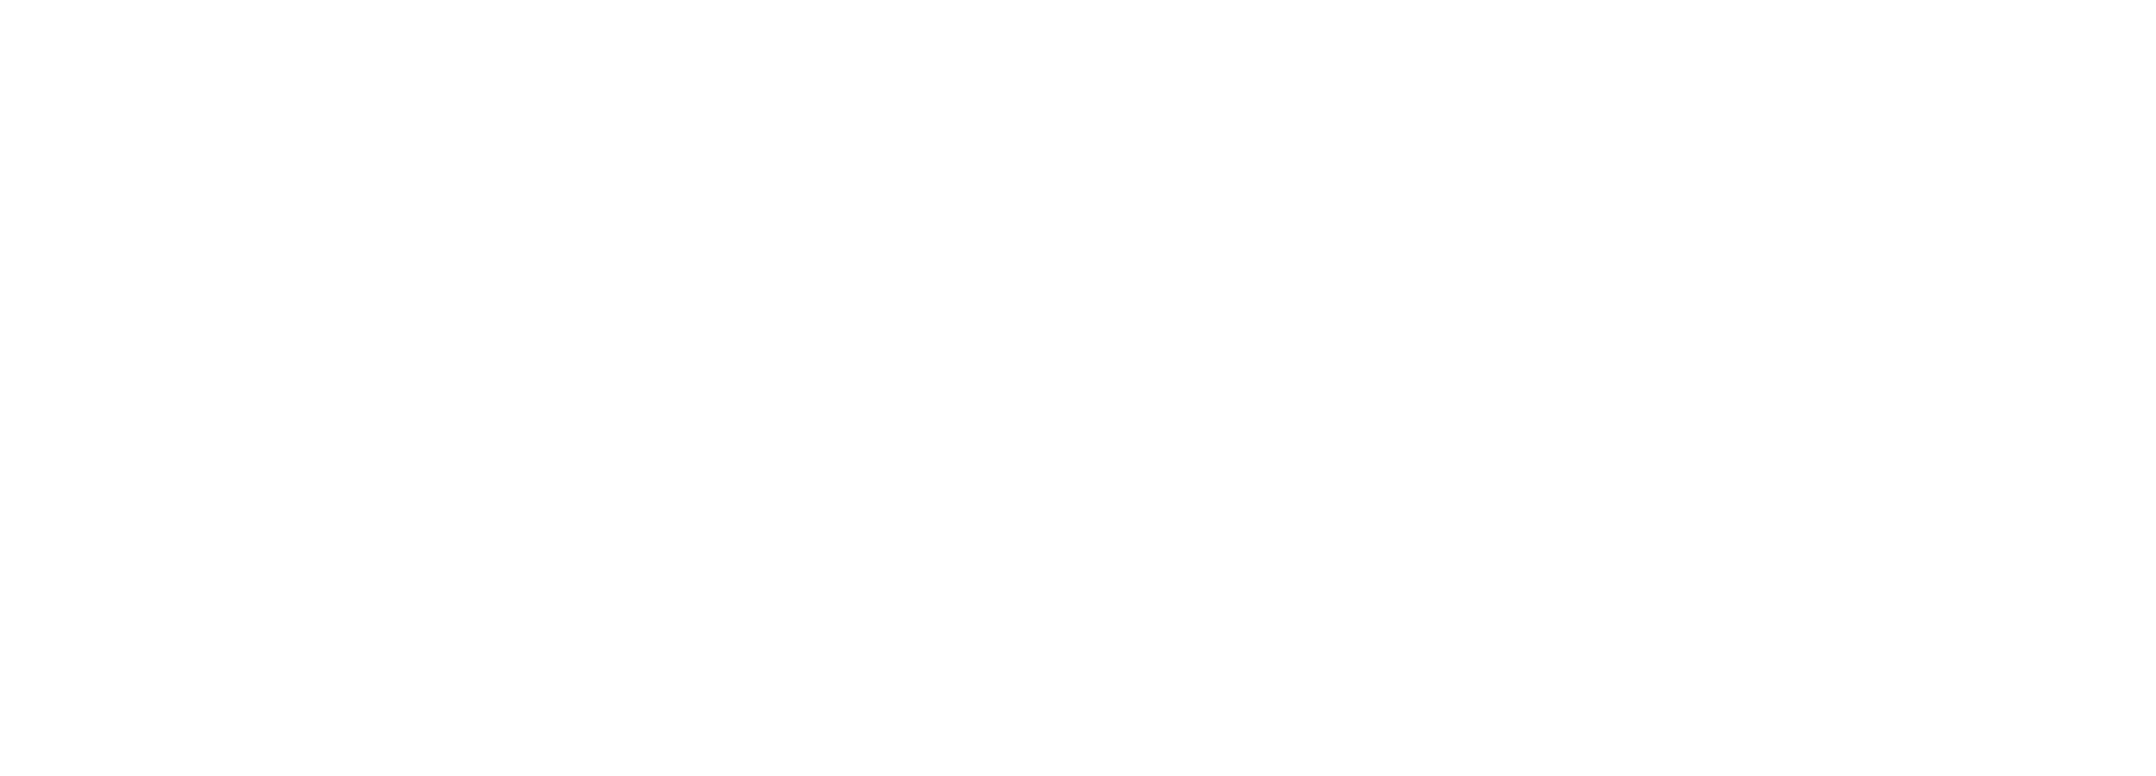 Crabtree Lakeside